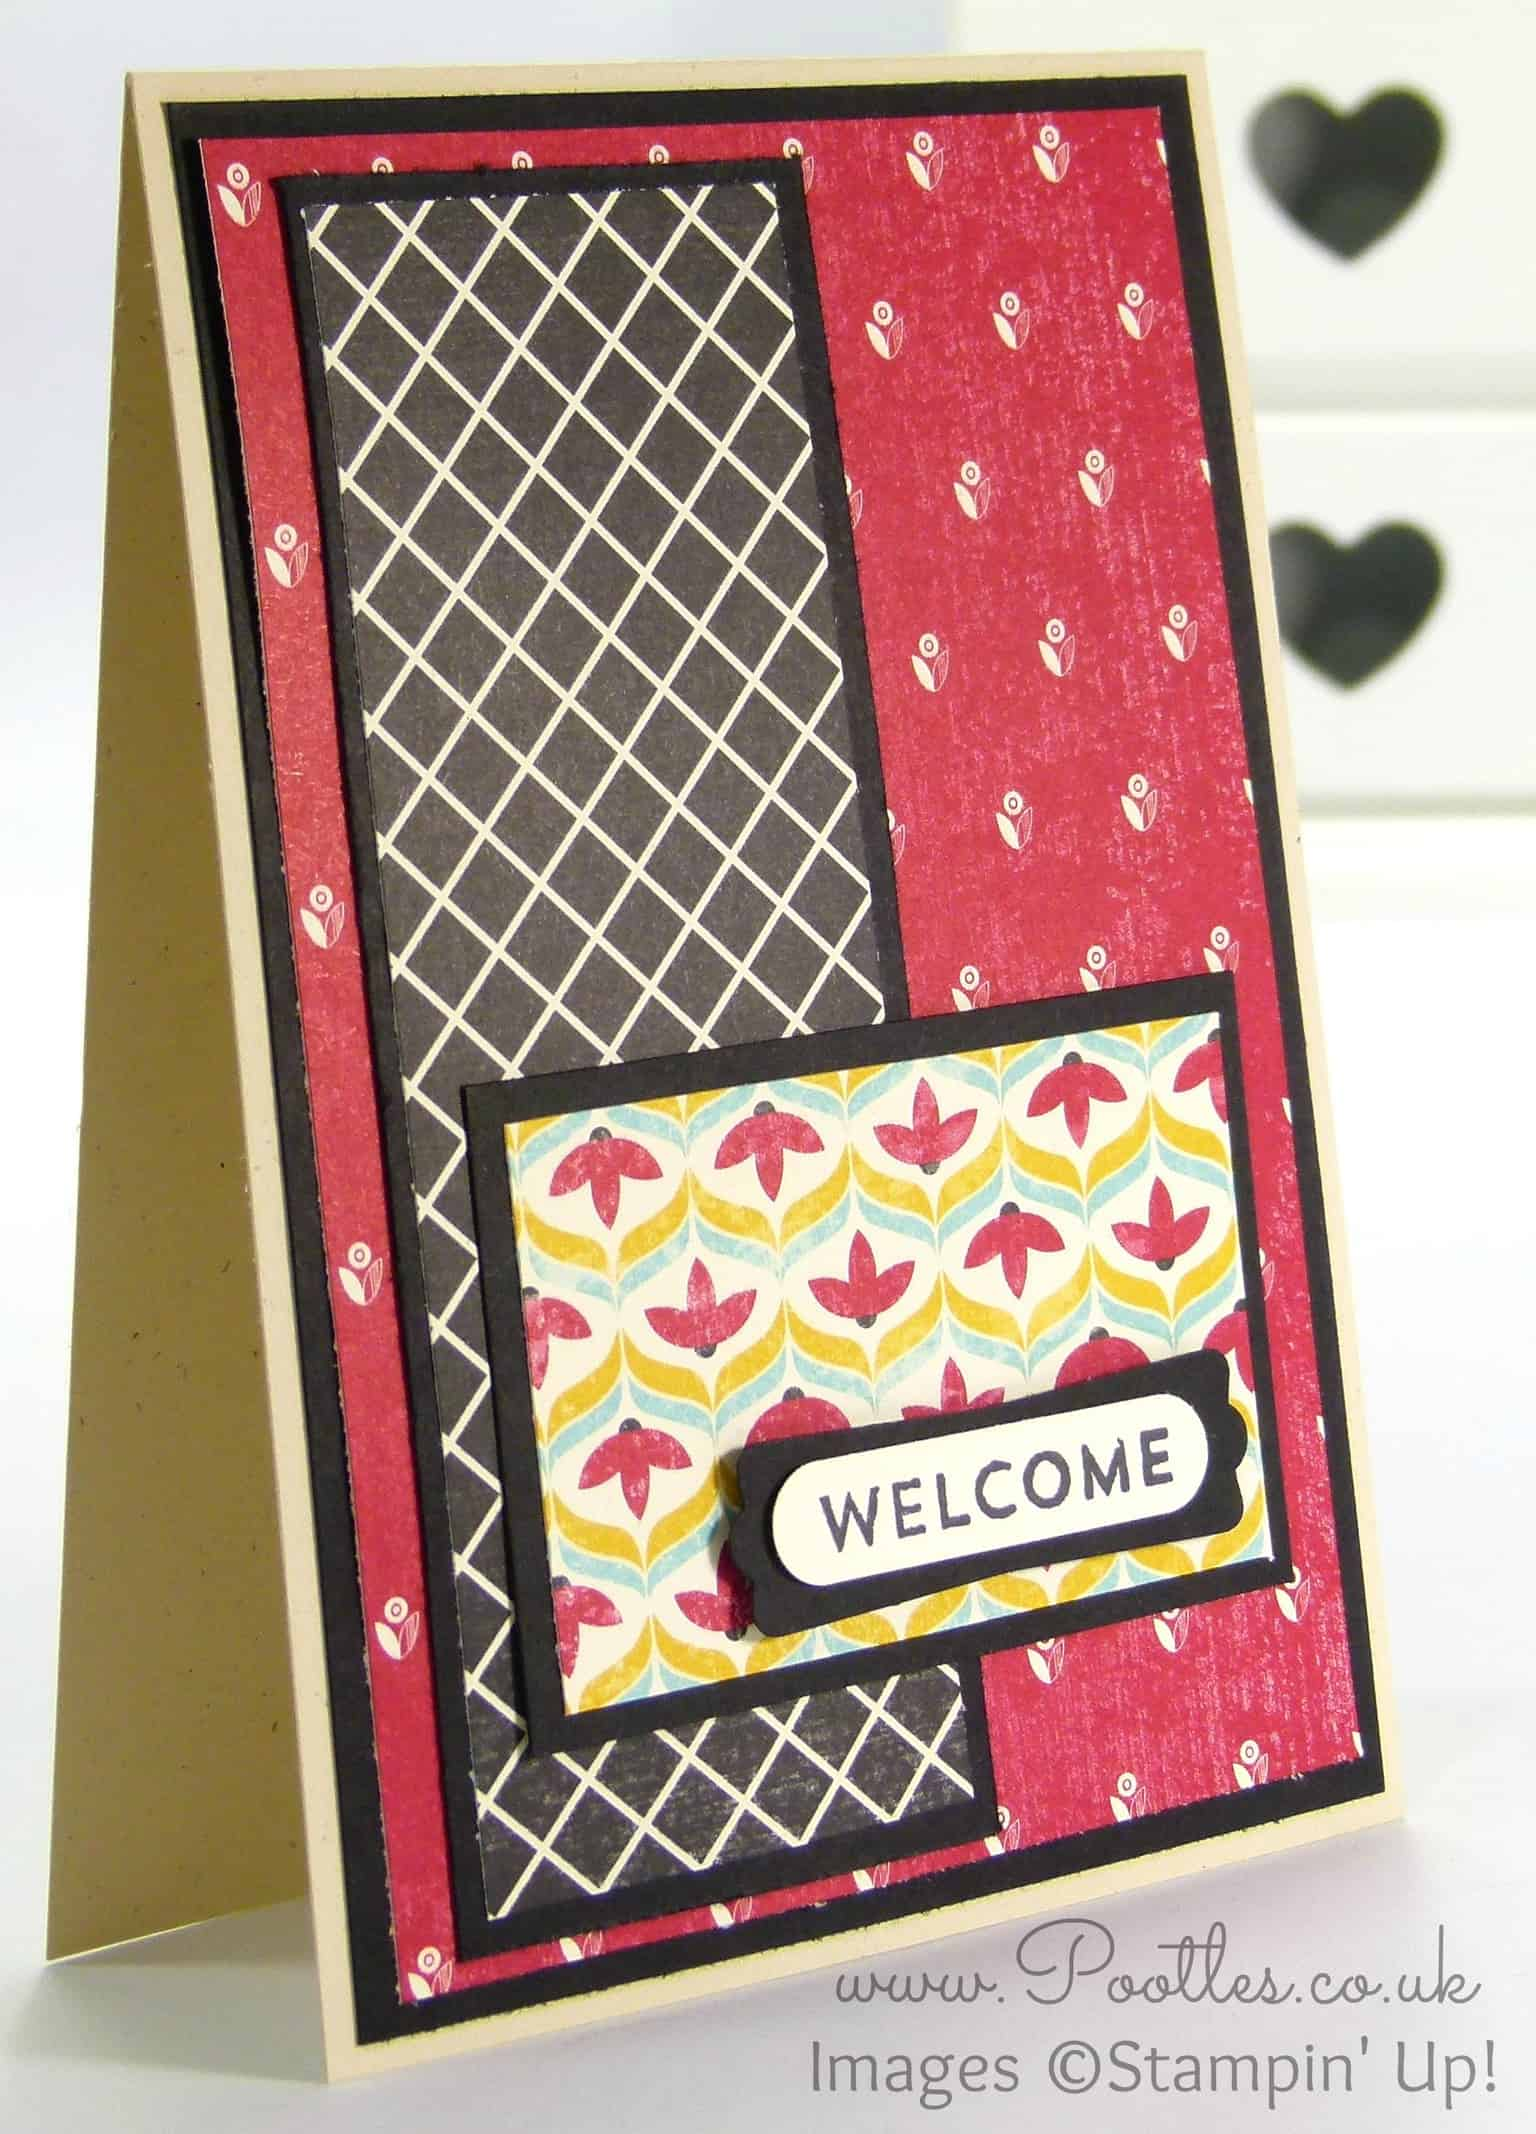 Join Stampin' Up! and Team Welcome Cards using Flashback DSP